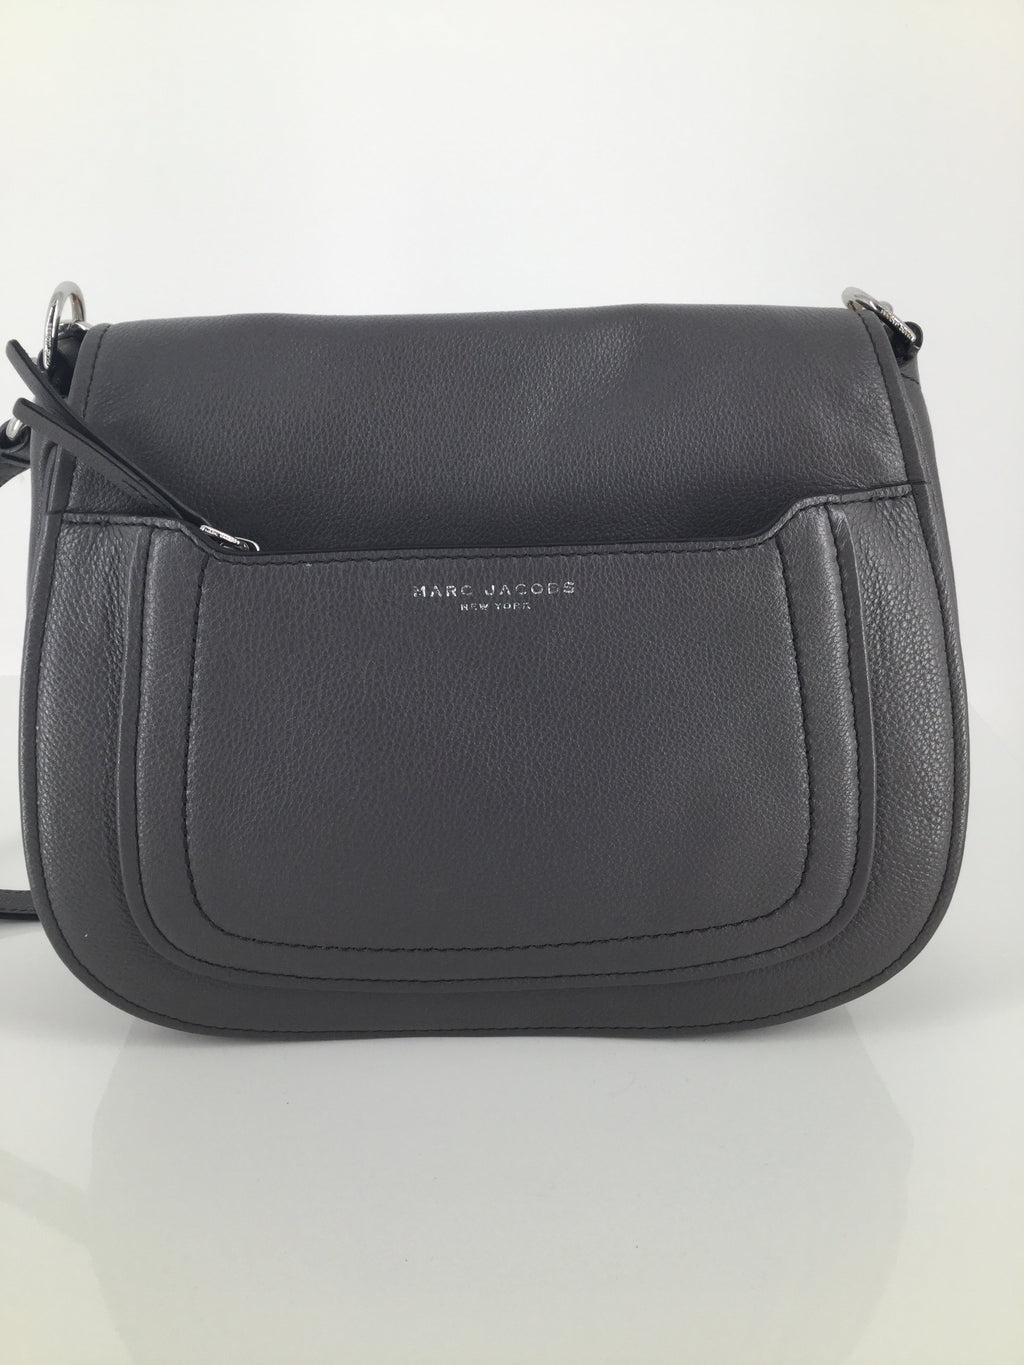 MARC JACOBS HANDBAG DESIGNER SIZE:LARGE